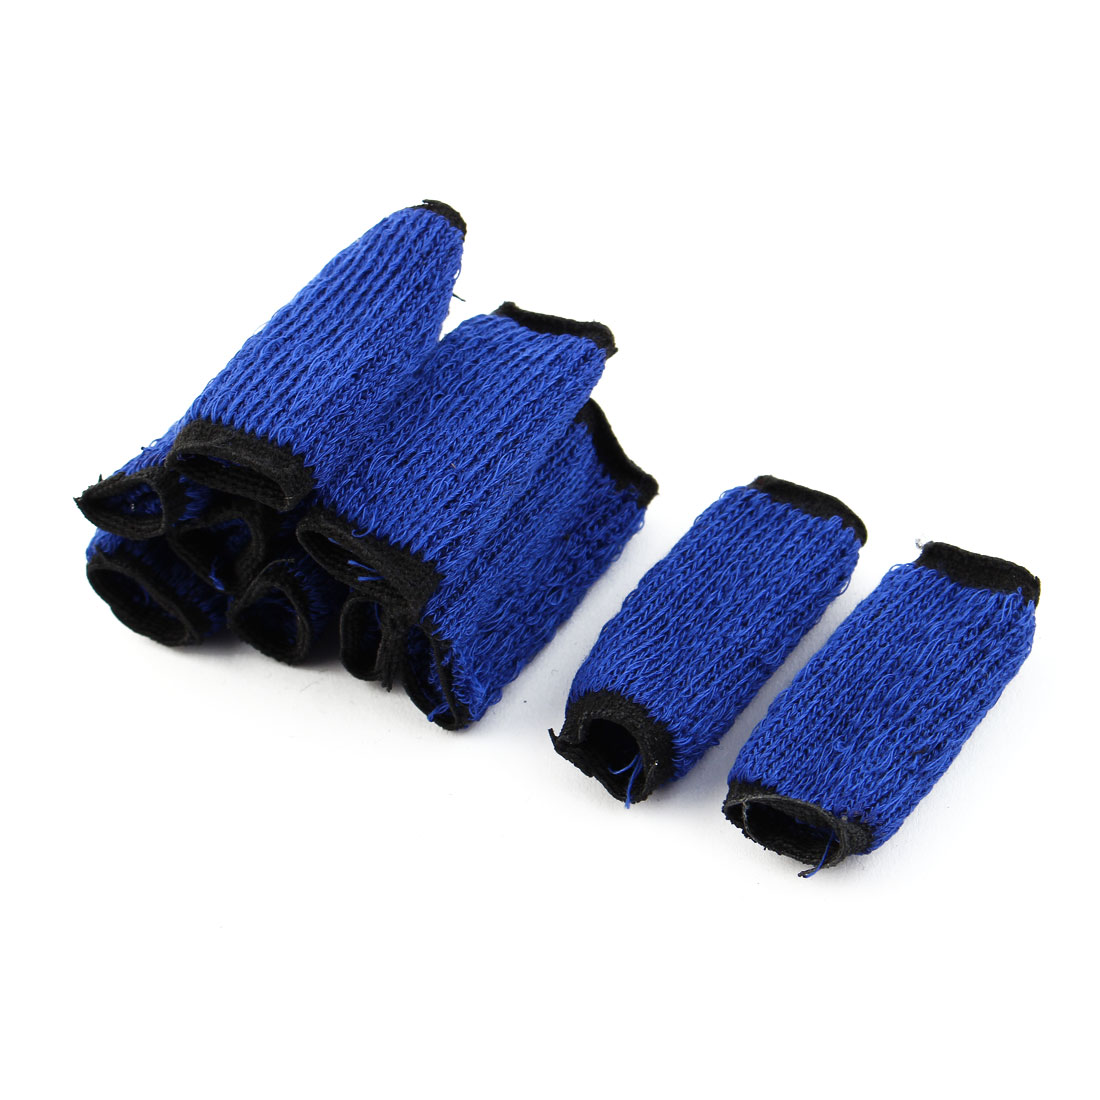 10 Pcs Volleyball Sports Neoprene Finger Sleeve Wrap Blue Black